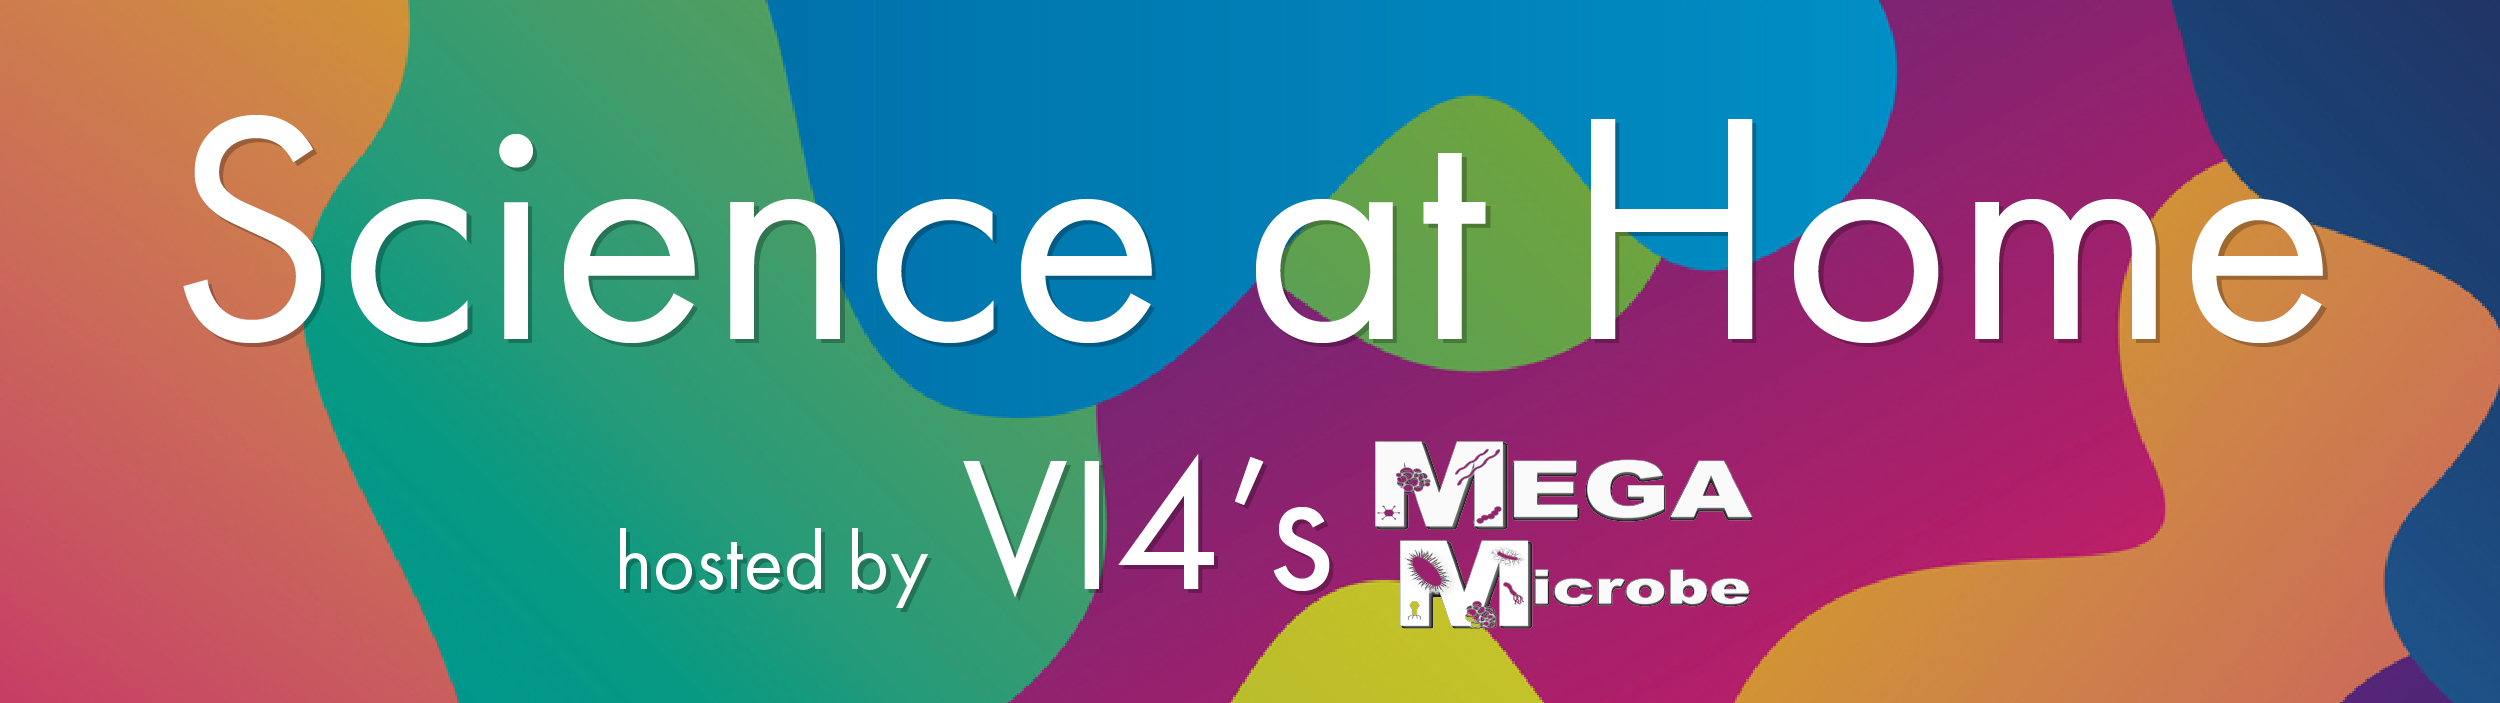 Science at Home, hosted by VI4's MEGAMicrobe